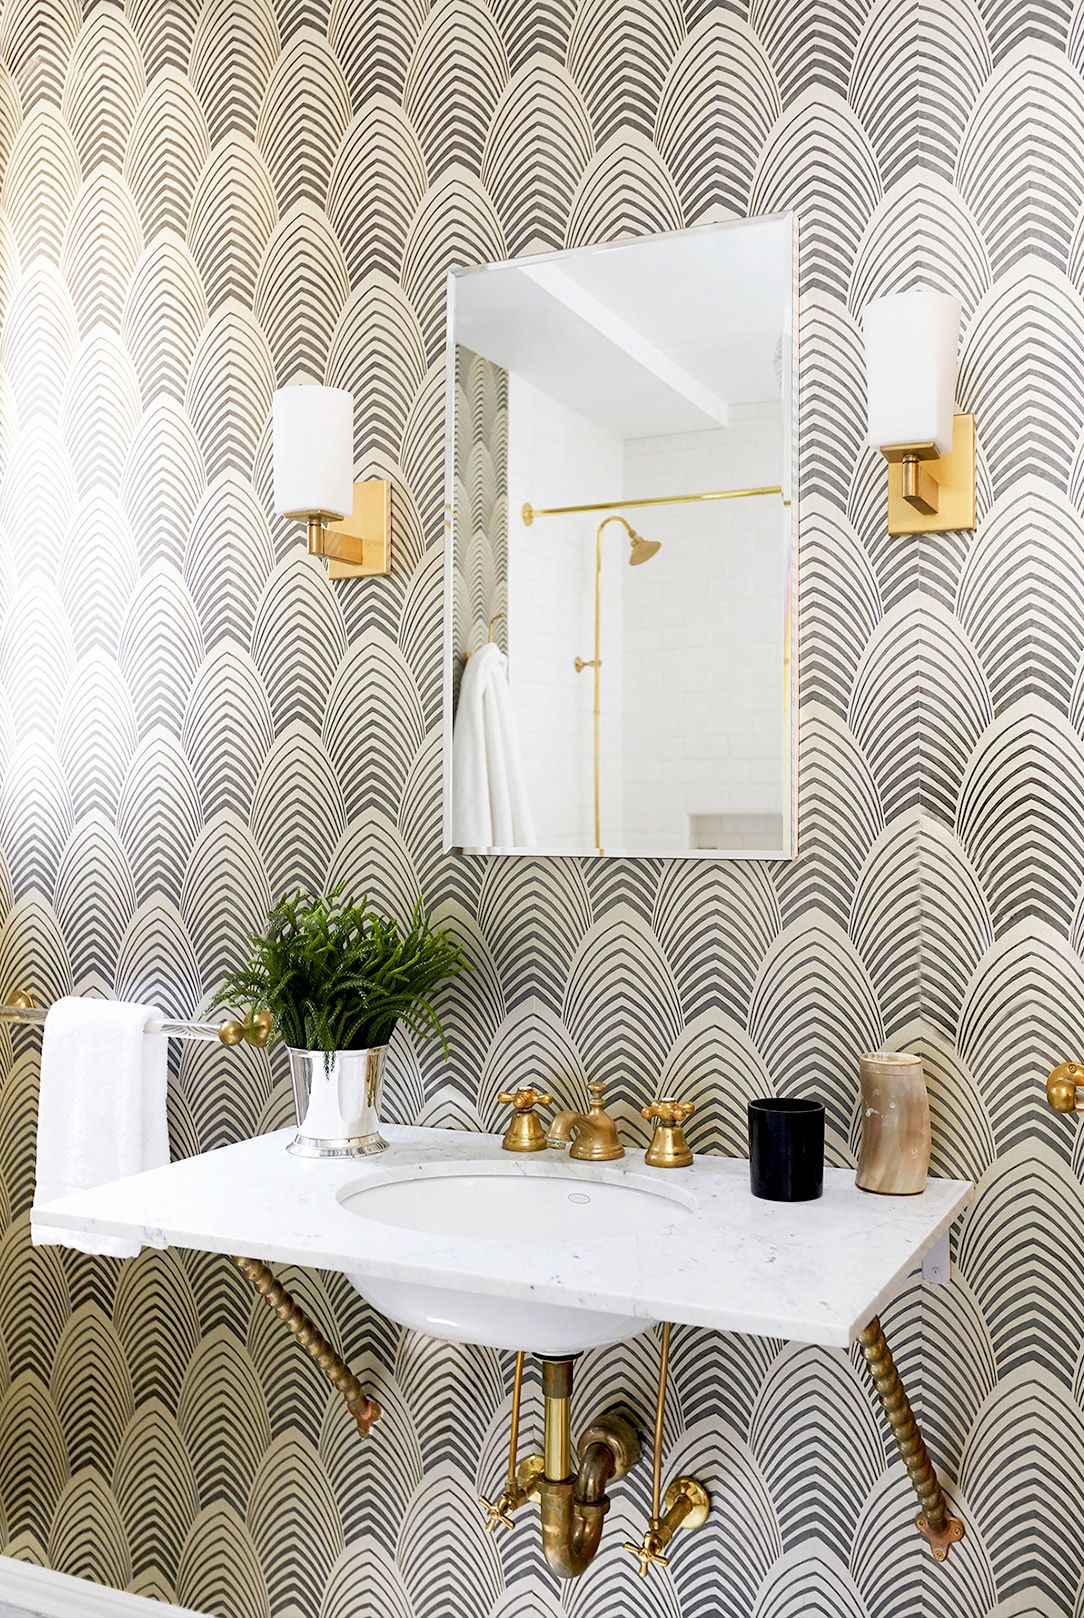 Wallpaper 101: Your Ultimate Guide to Statement Walls | White ...